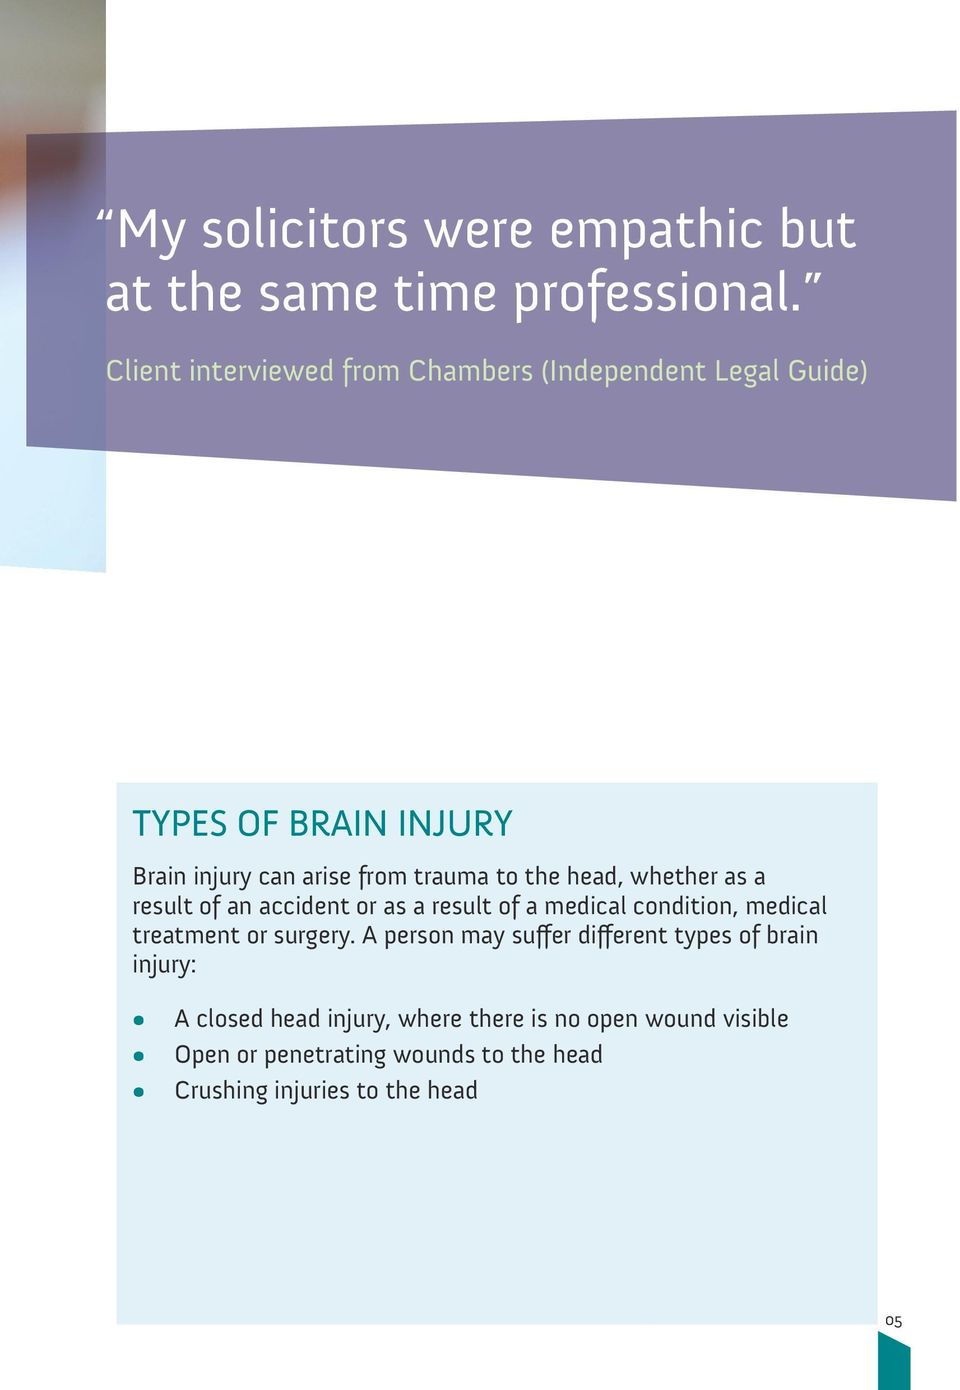 the head, whether as a result of an accident or as a result of a medical condition, medical treatment or surgery.